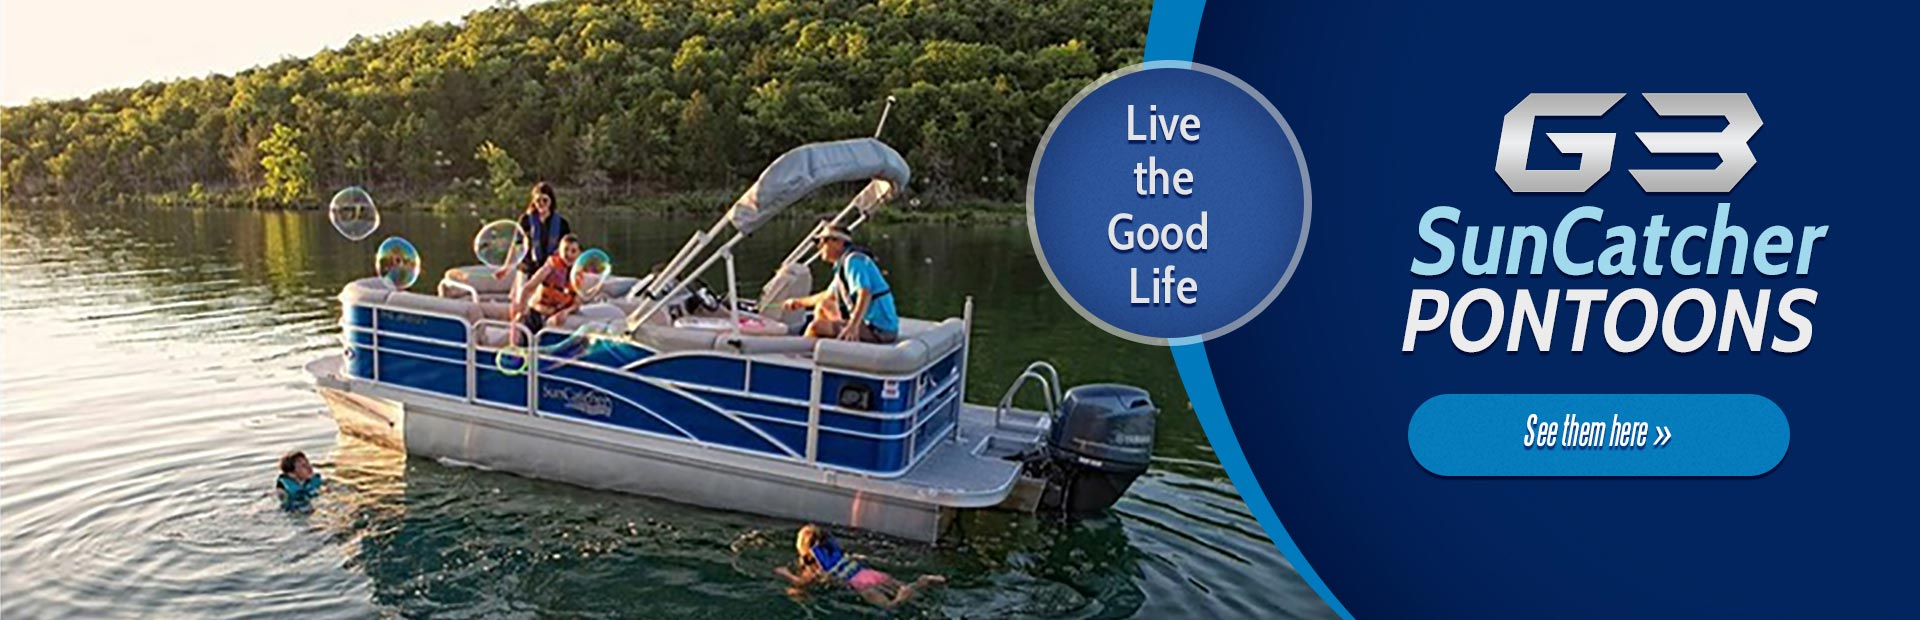 Live the good life with a new G3 SunCatcher pontoon. Click here to see the lineup.